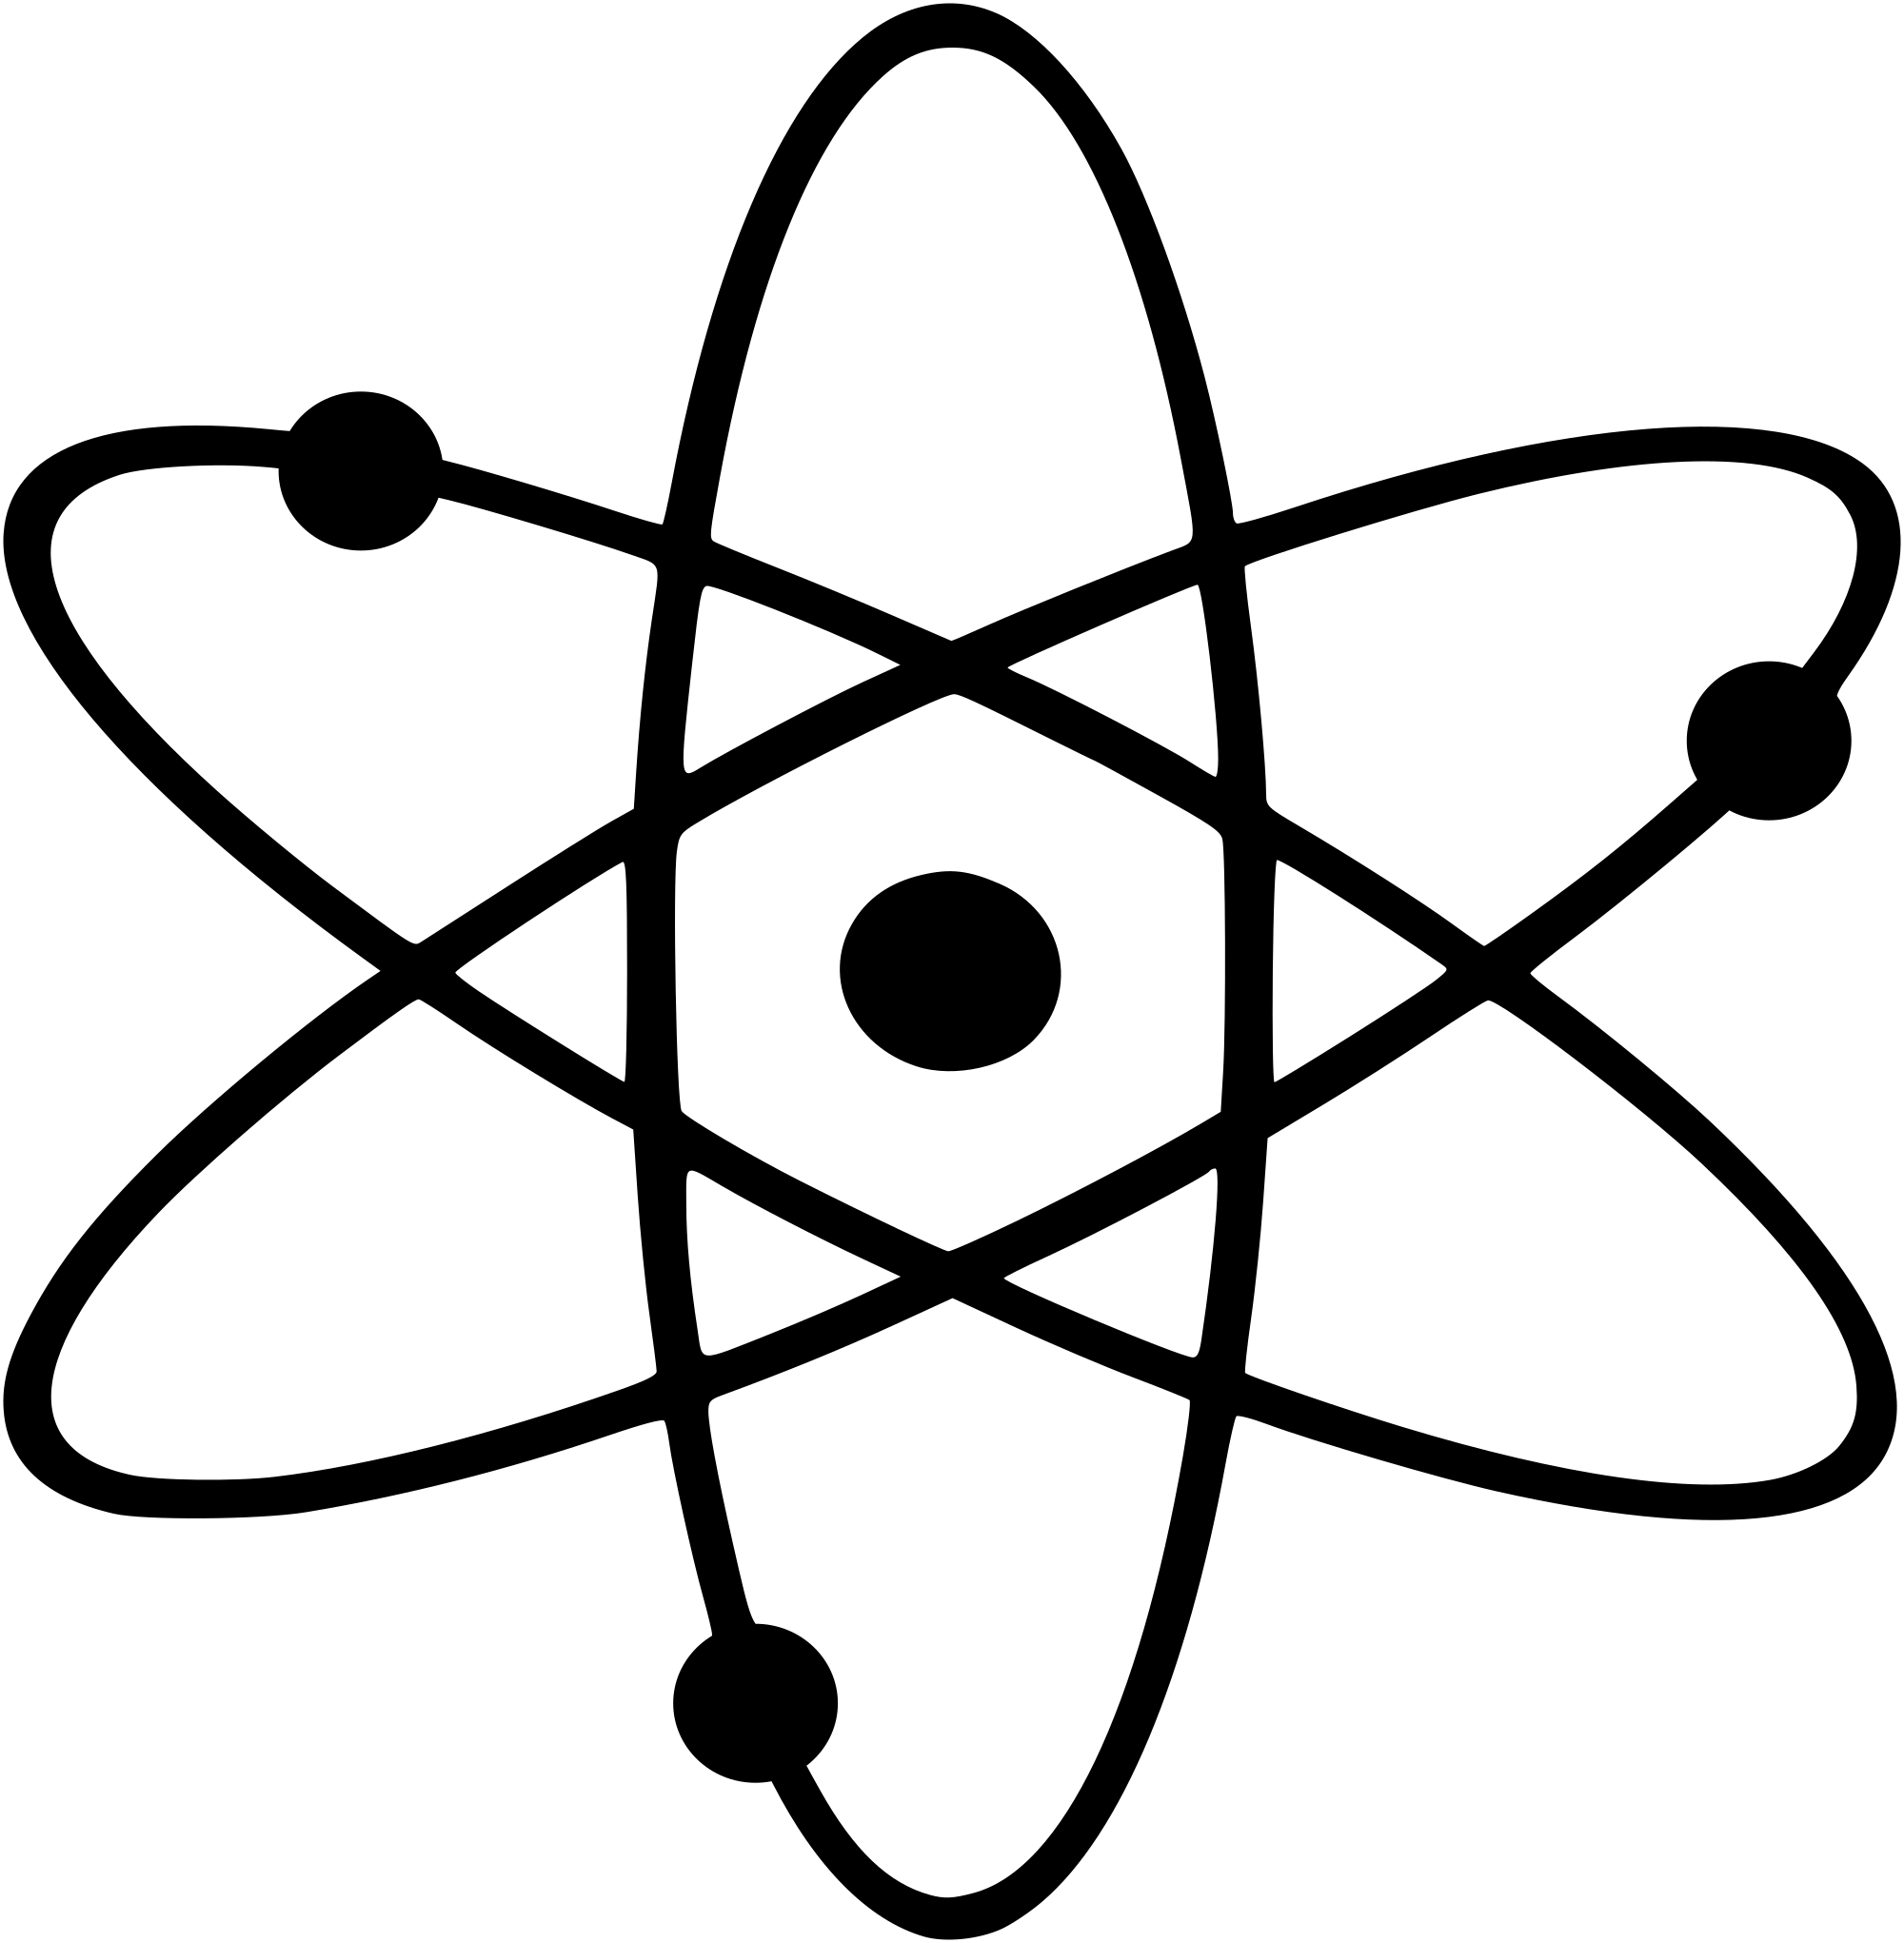 Atom symbol png. File as used in